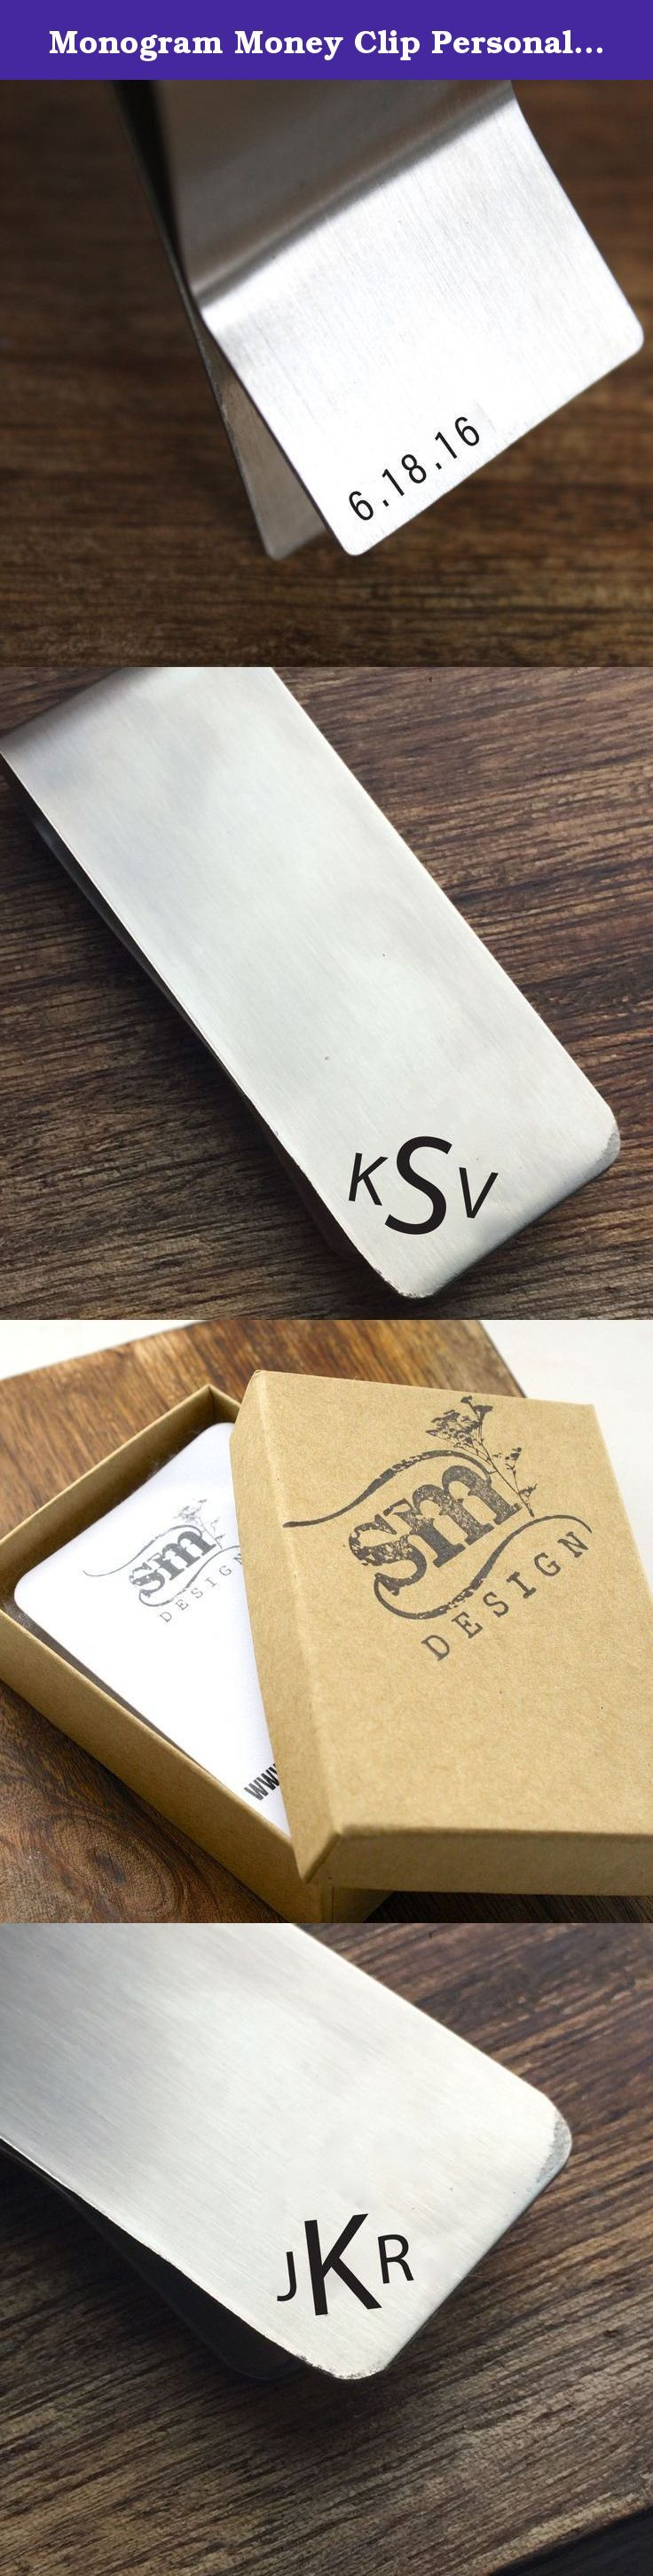 Monogram Money Clip Personalized Money Clip Initial Money Clip Mens Gift Mens Money Clip, Wedding Money Clip Boyfriend Gift Husband Gift. The perfect gift!! This stainless steel money clip has a personalized monogram on the front and a personalized date on the back.